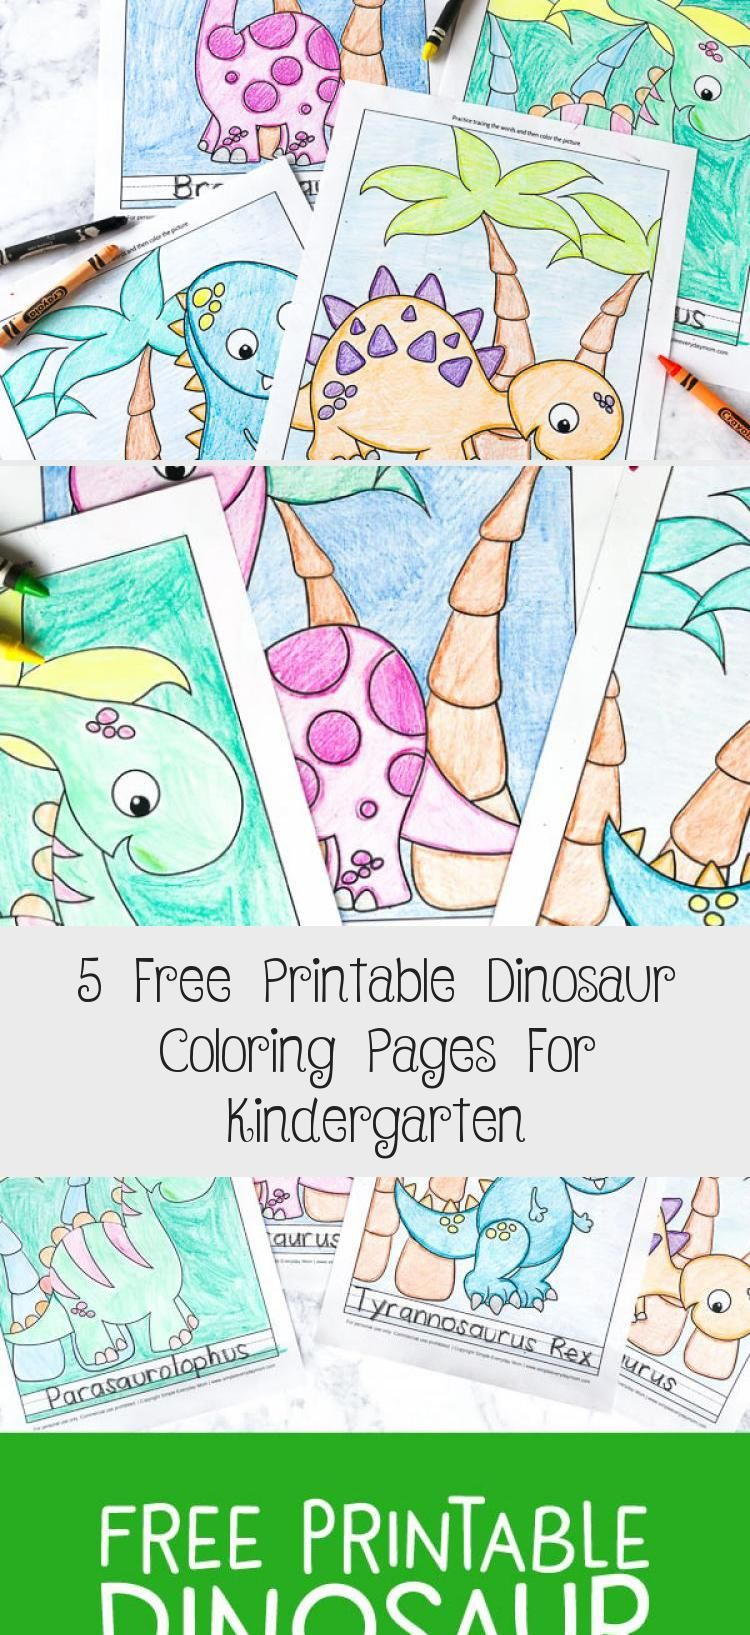 5 Free Printable Dinosaur Coloring Pages For Kindergarten - Toys #aboutdinosaurs